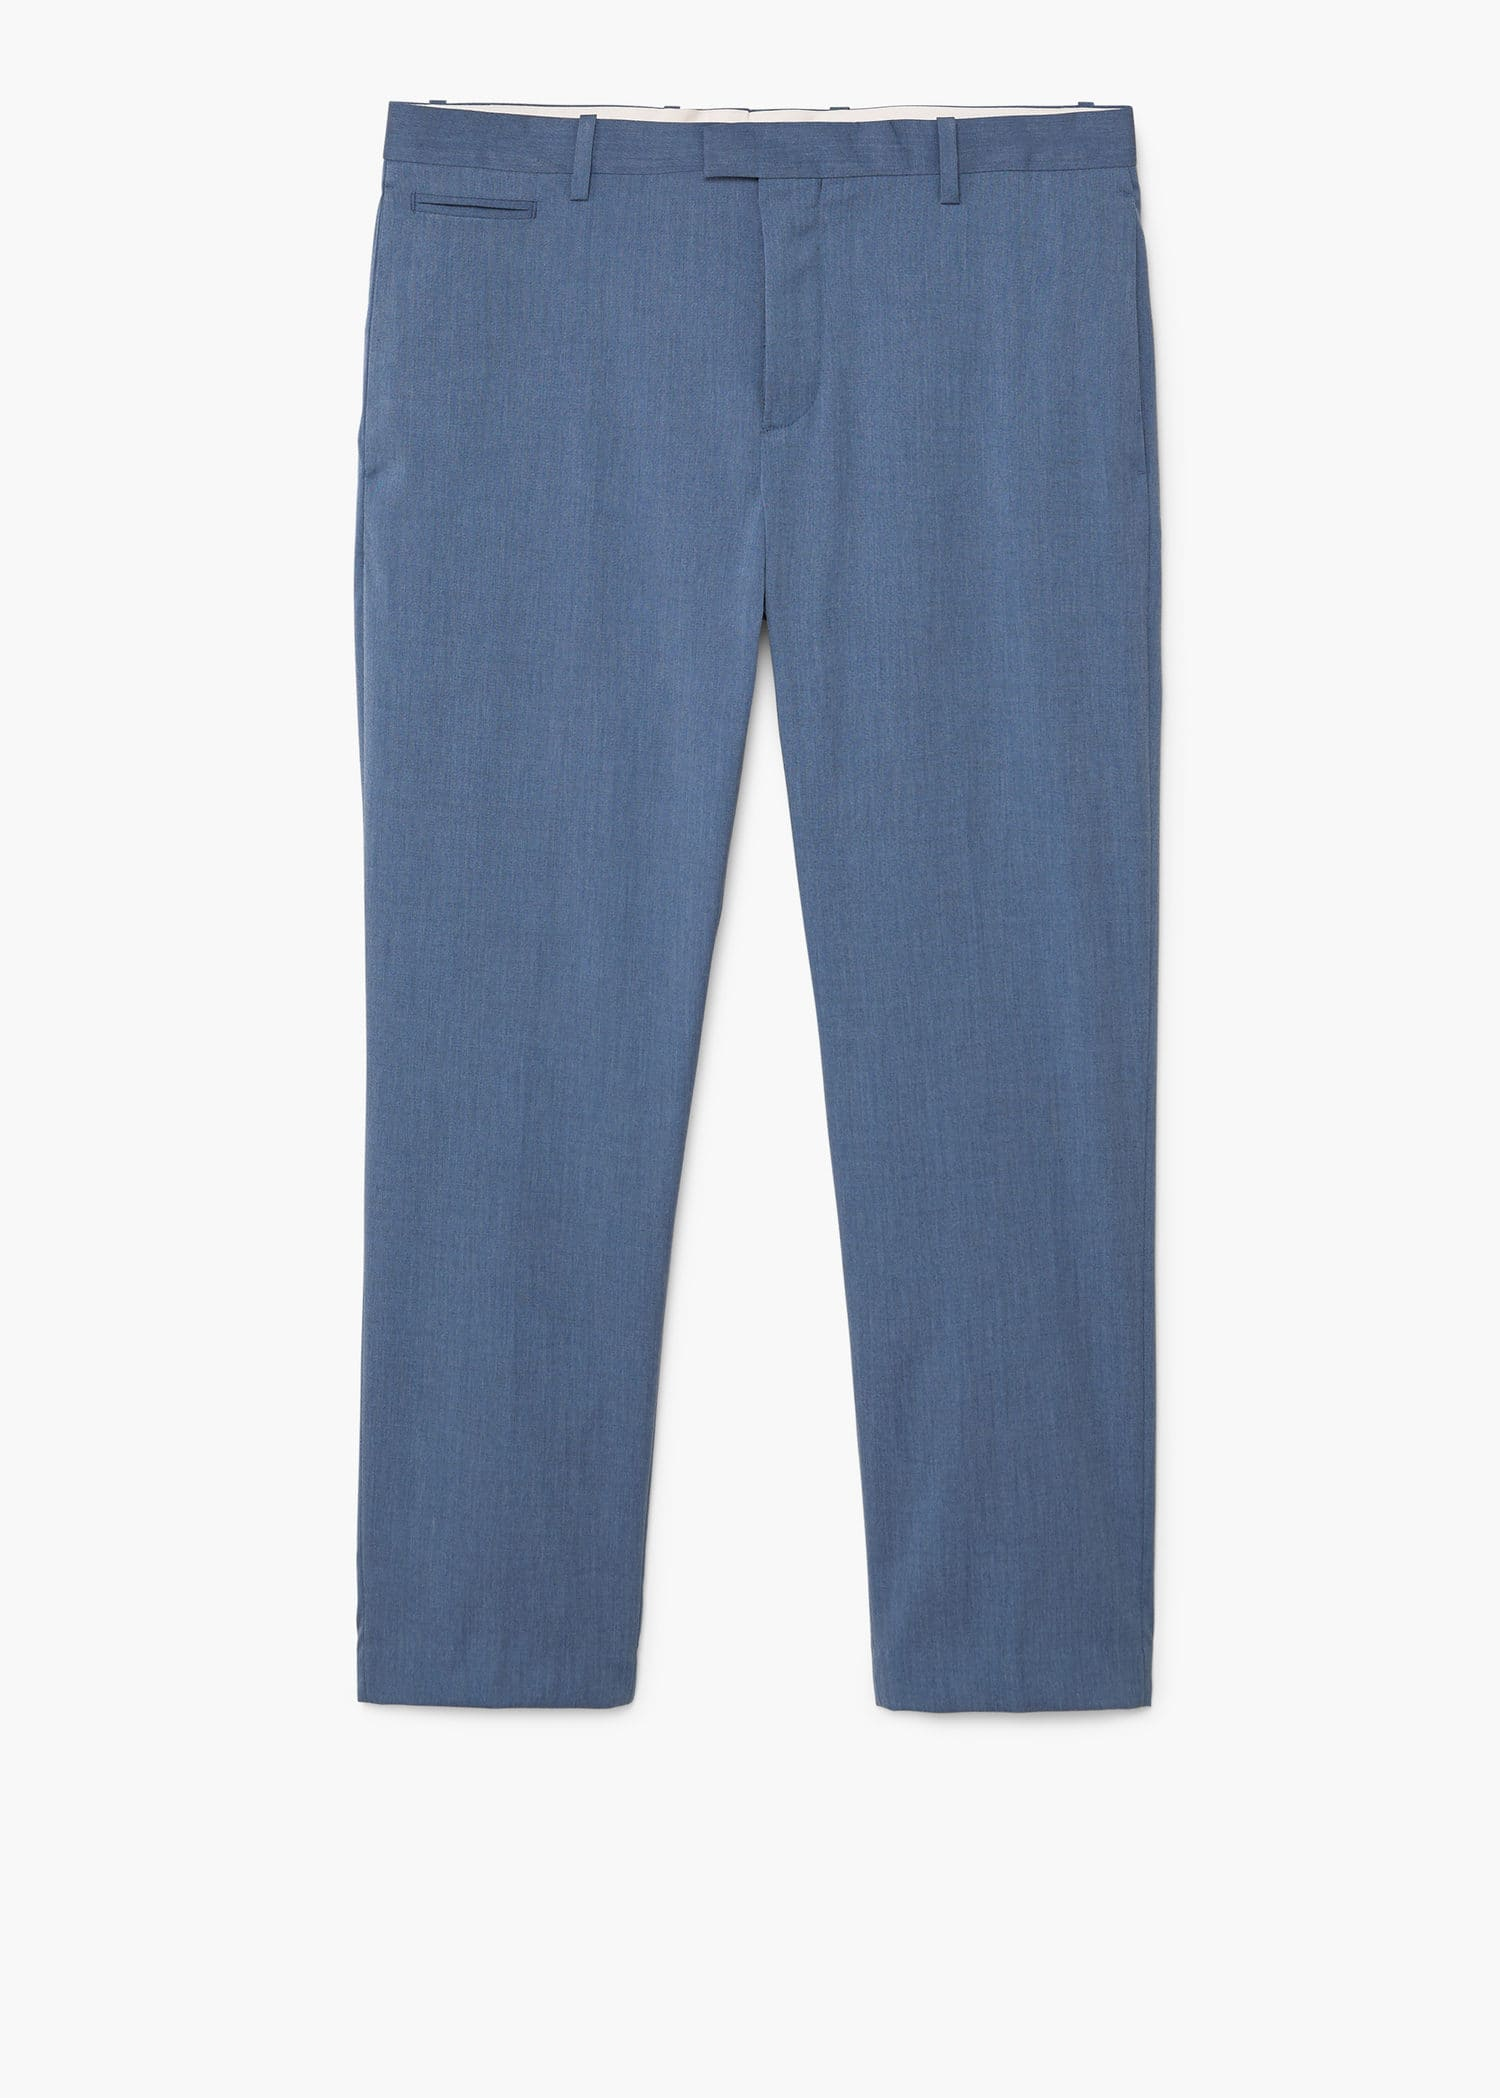 Patterned Crop Chinos Man Outlet Lithuania